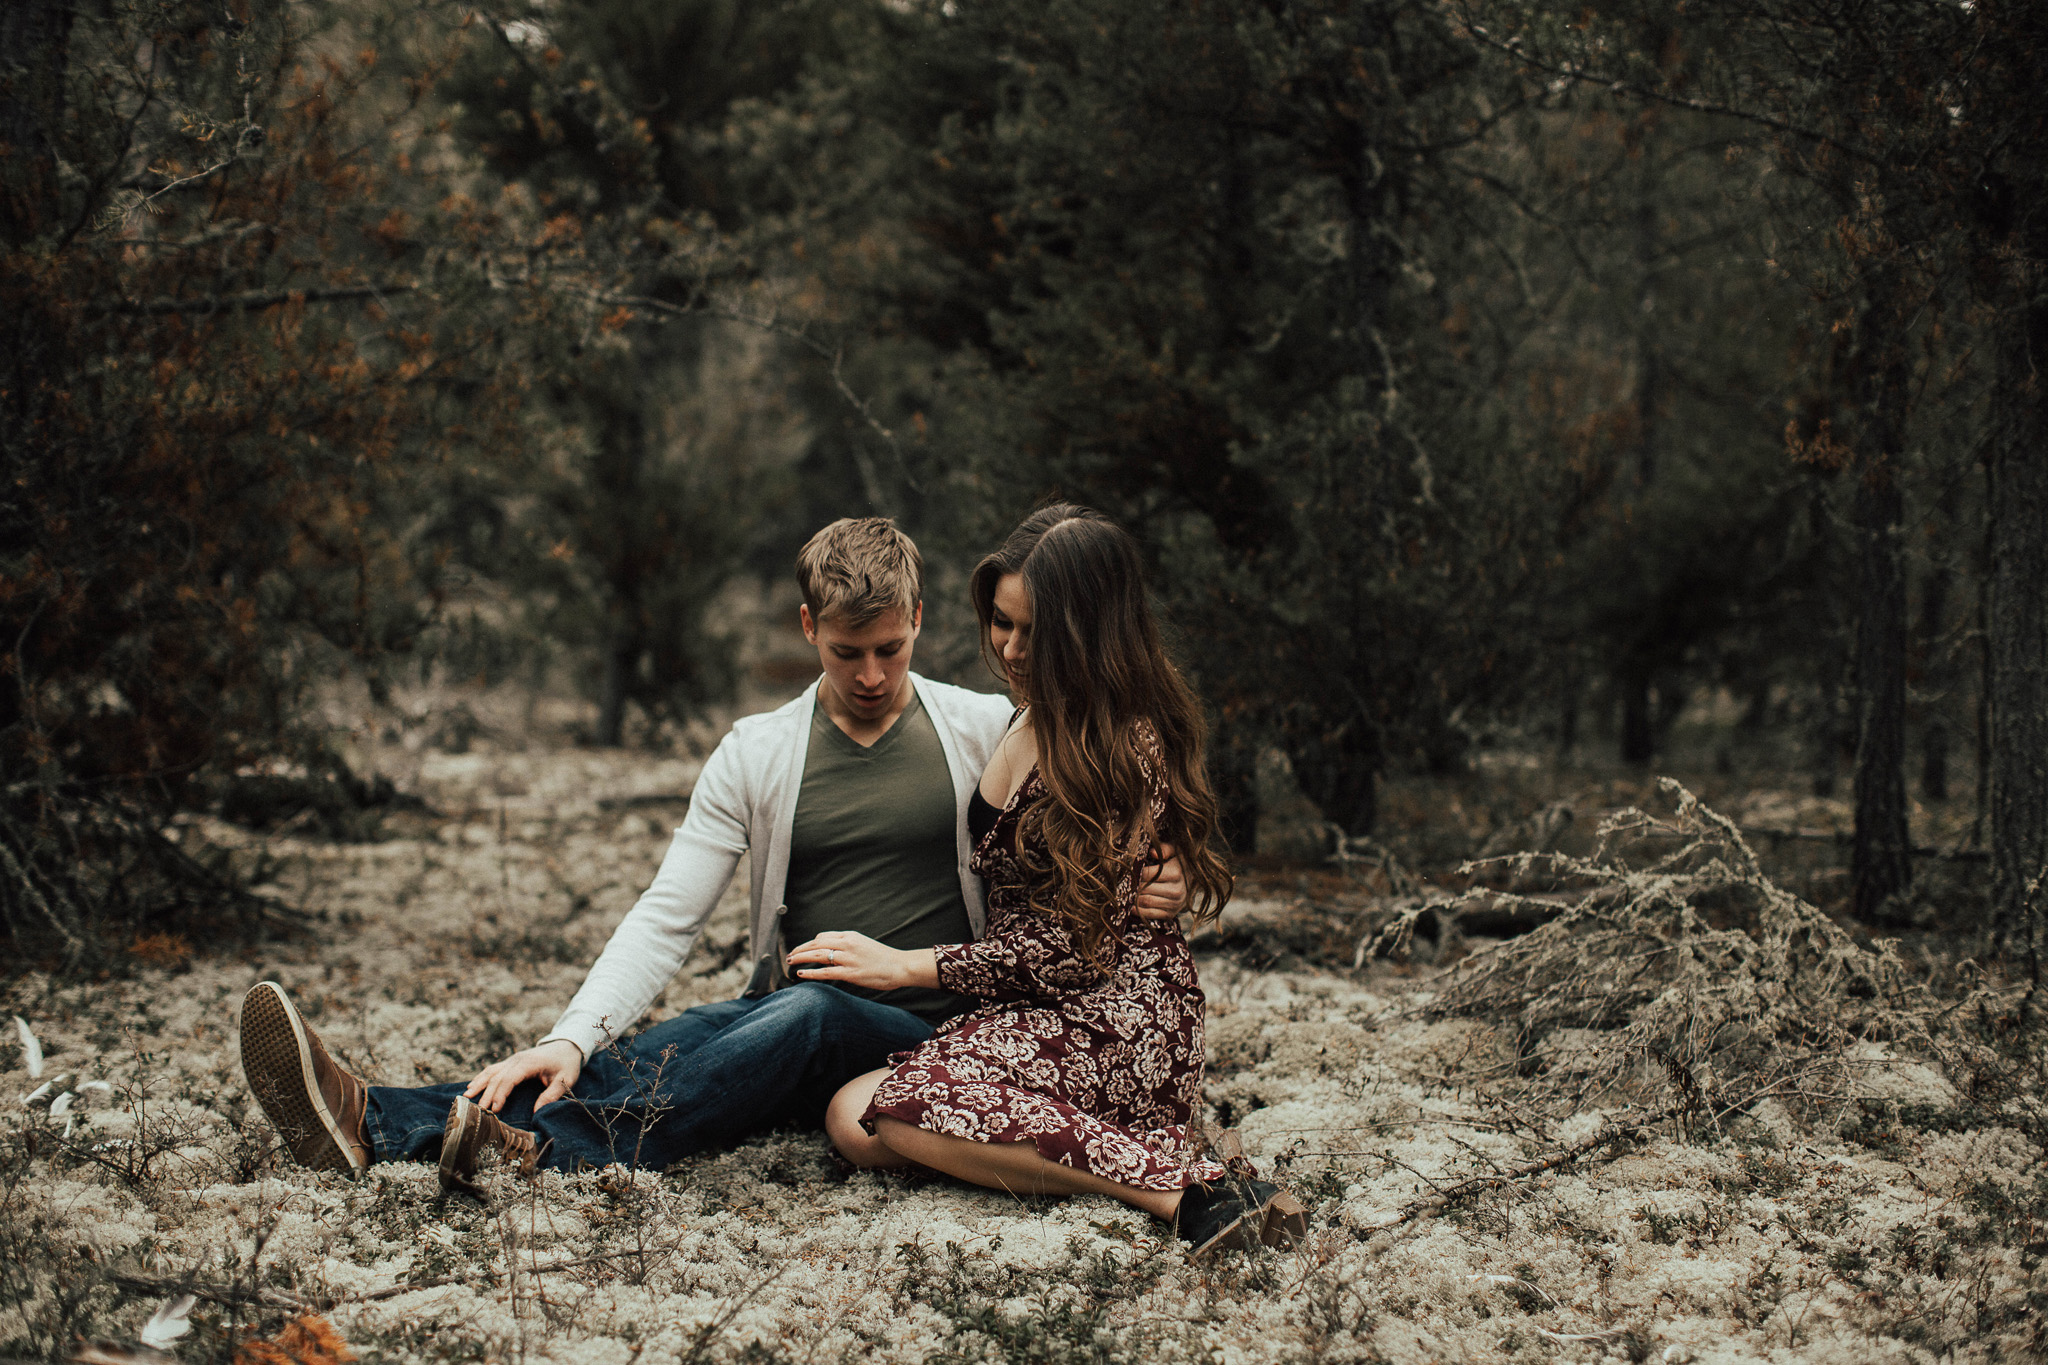 Edmonton Engagement Photographer - Michelle Larmand Photography - Mossy woods engagement session036